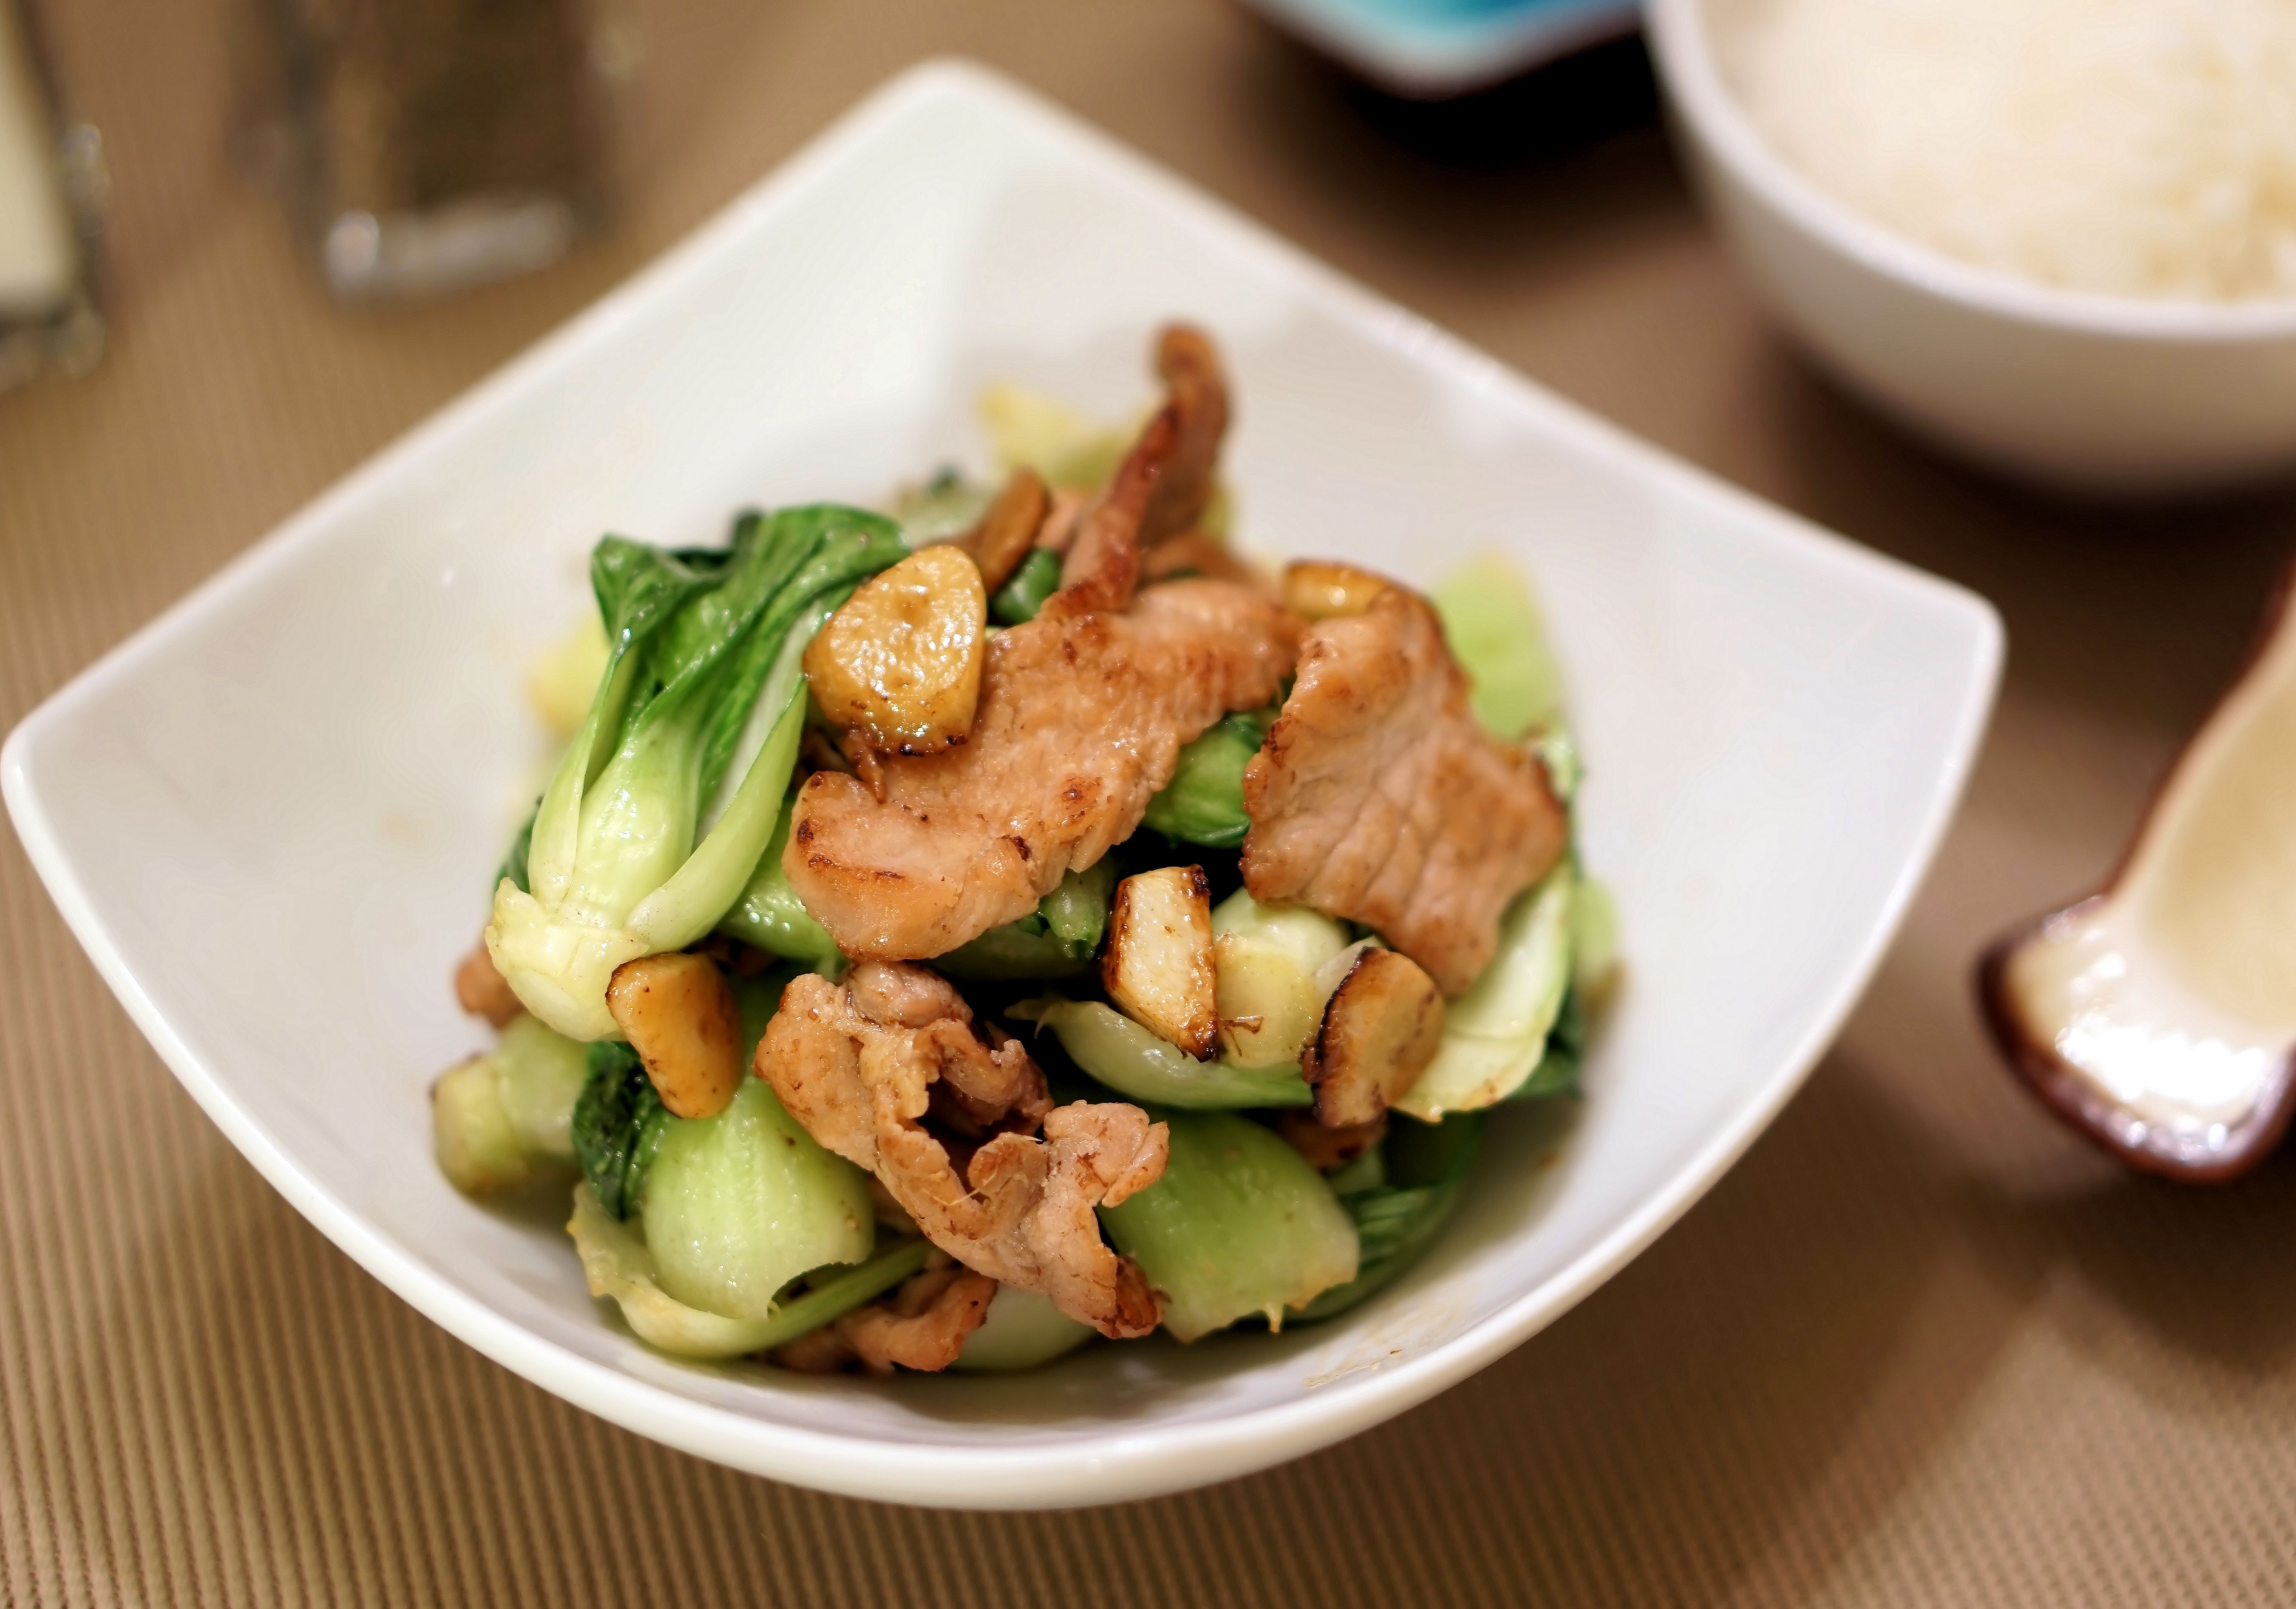 stirfry bok choy with garlic and pork